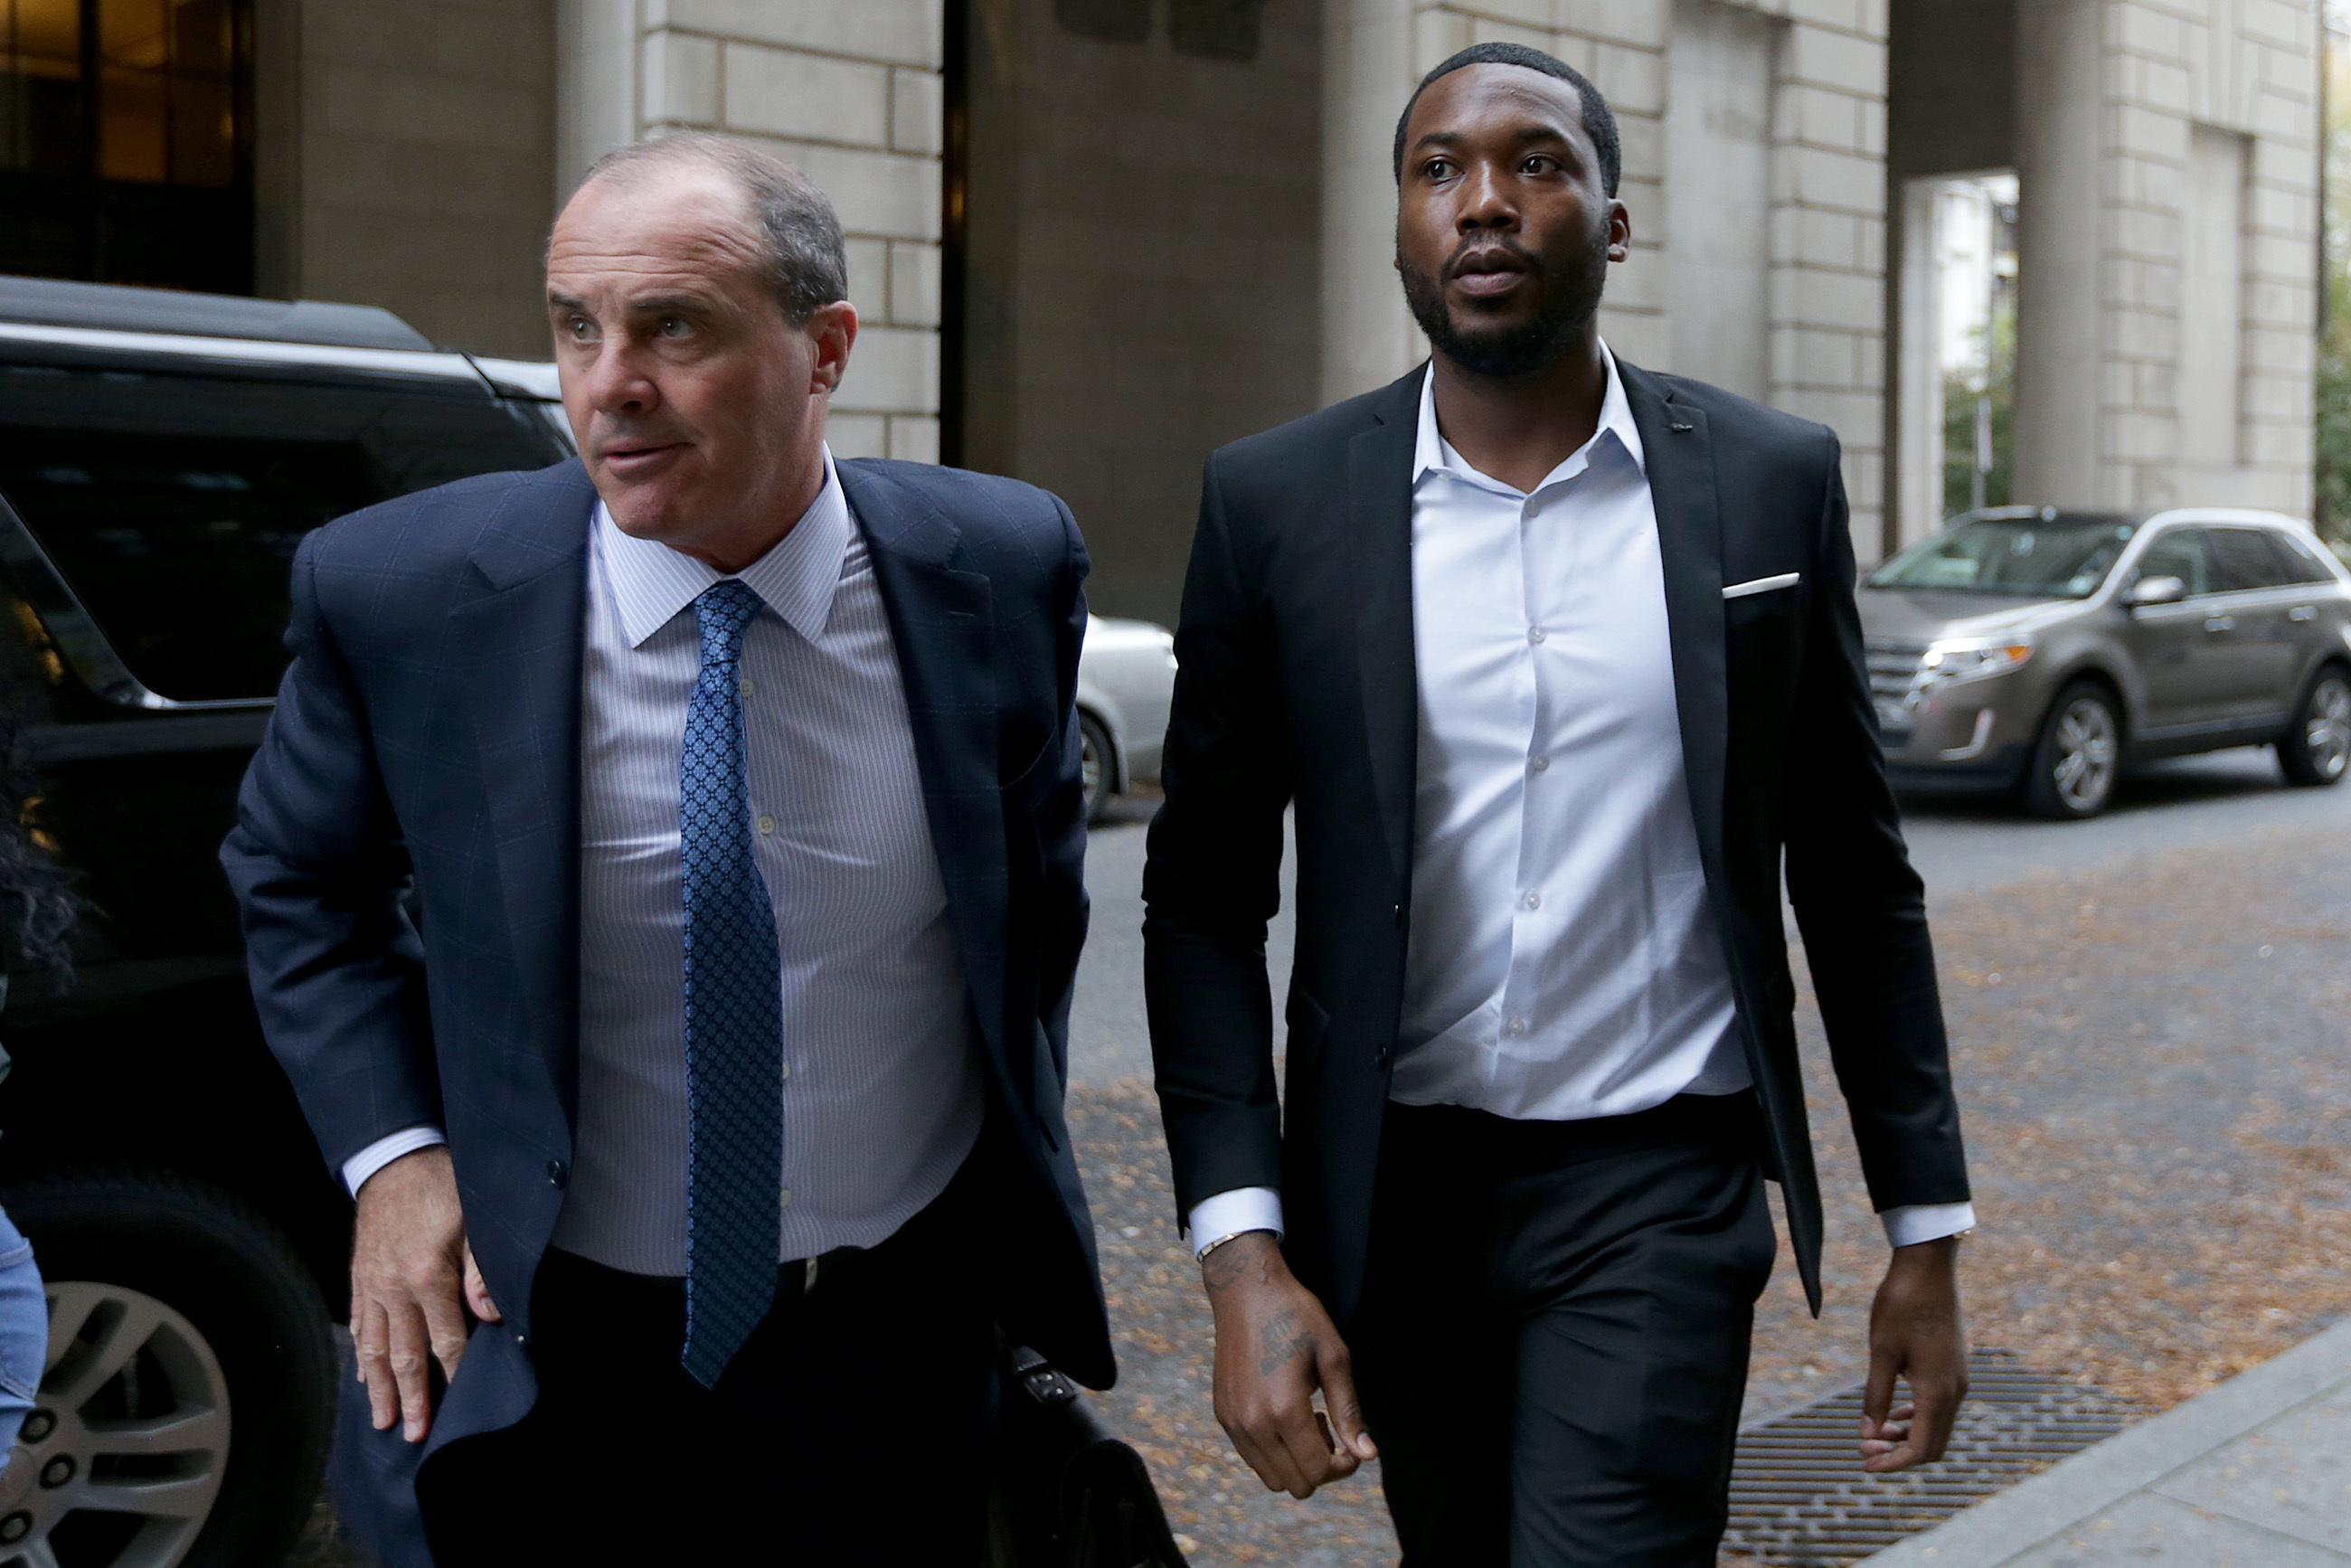 Rapper Meek Mill, right, arrives at the Criminal Justice Center in Philadelphia with his lawyer Brian McMonagle on Nov. 6, 2017.